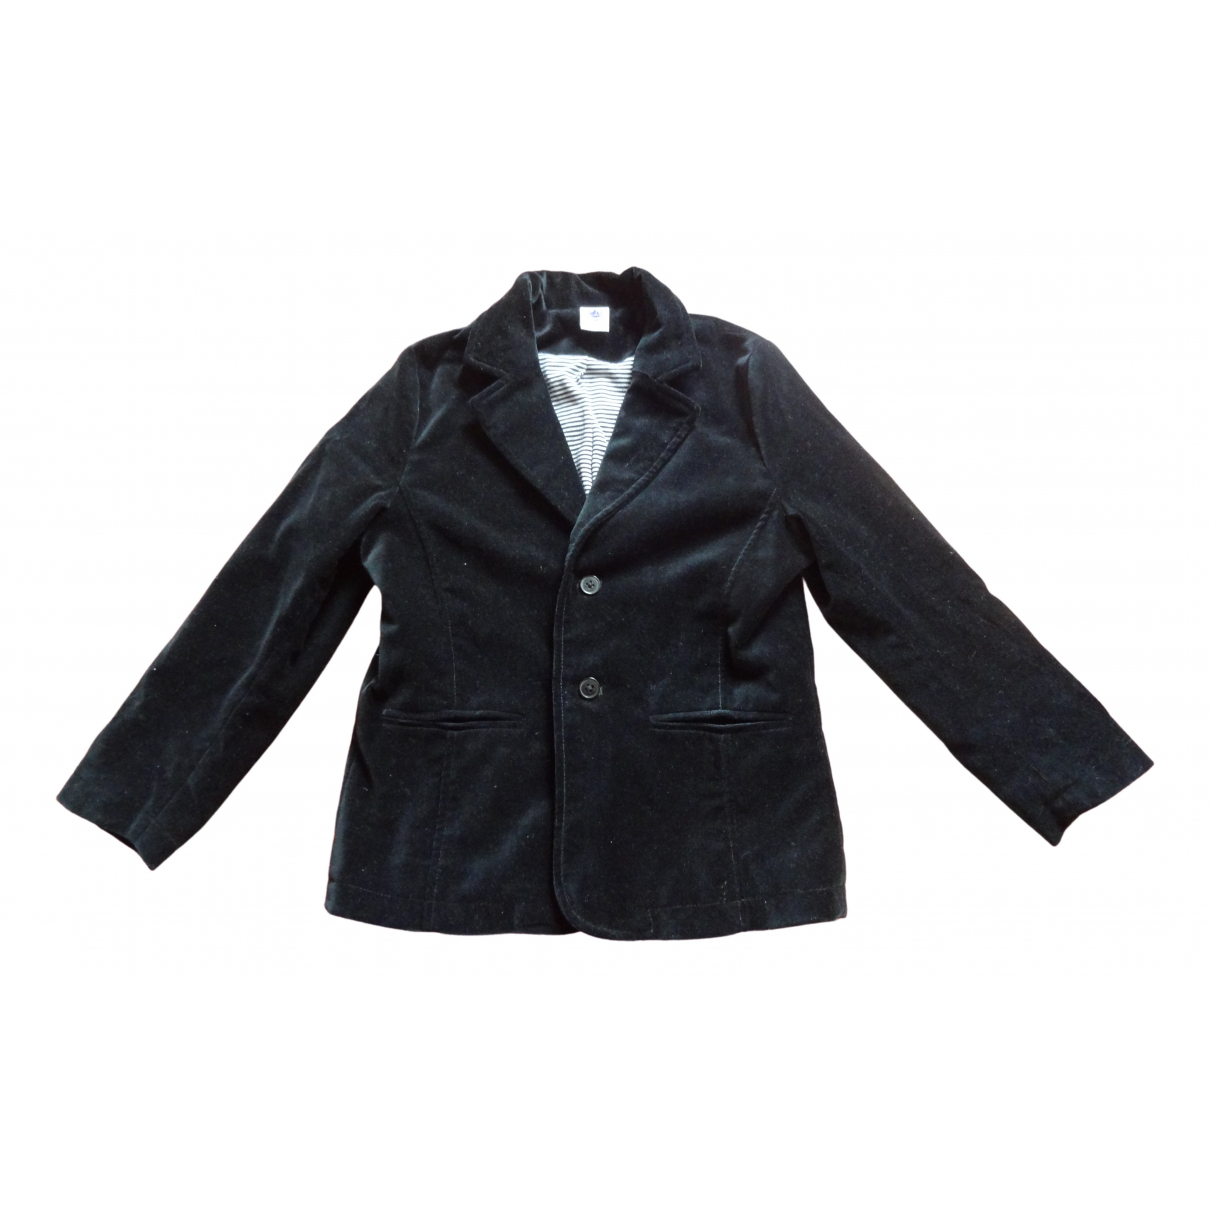 Petit Bateau N Black Cotton jacket & coat for Kids 6 years - up to 114cm FR